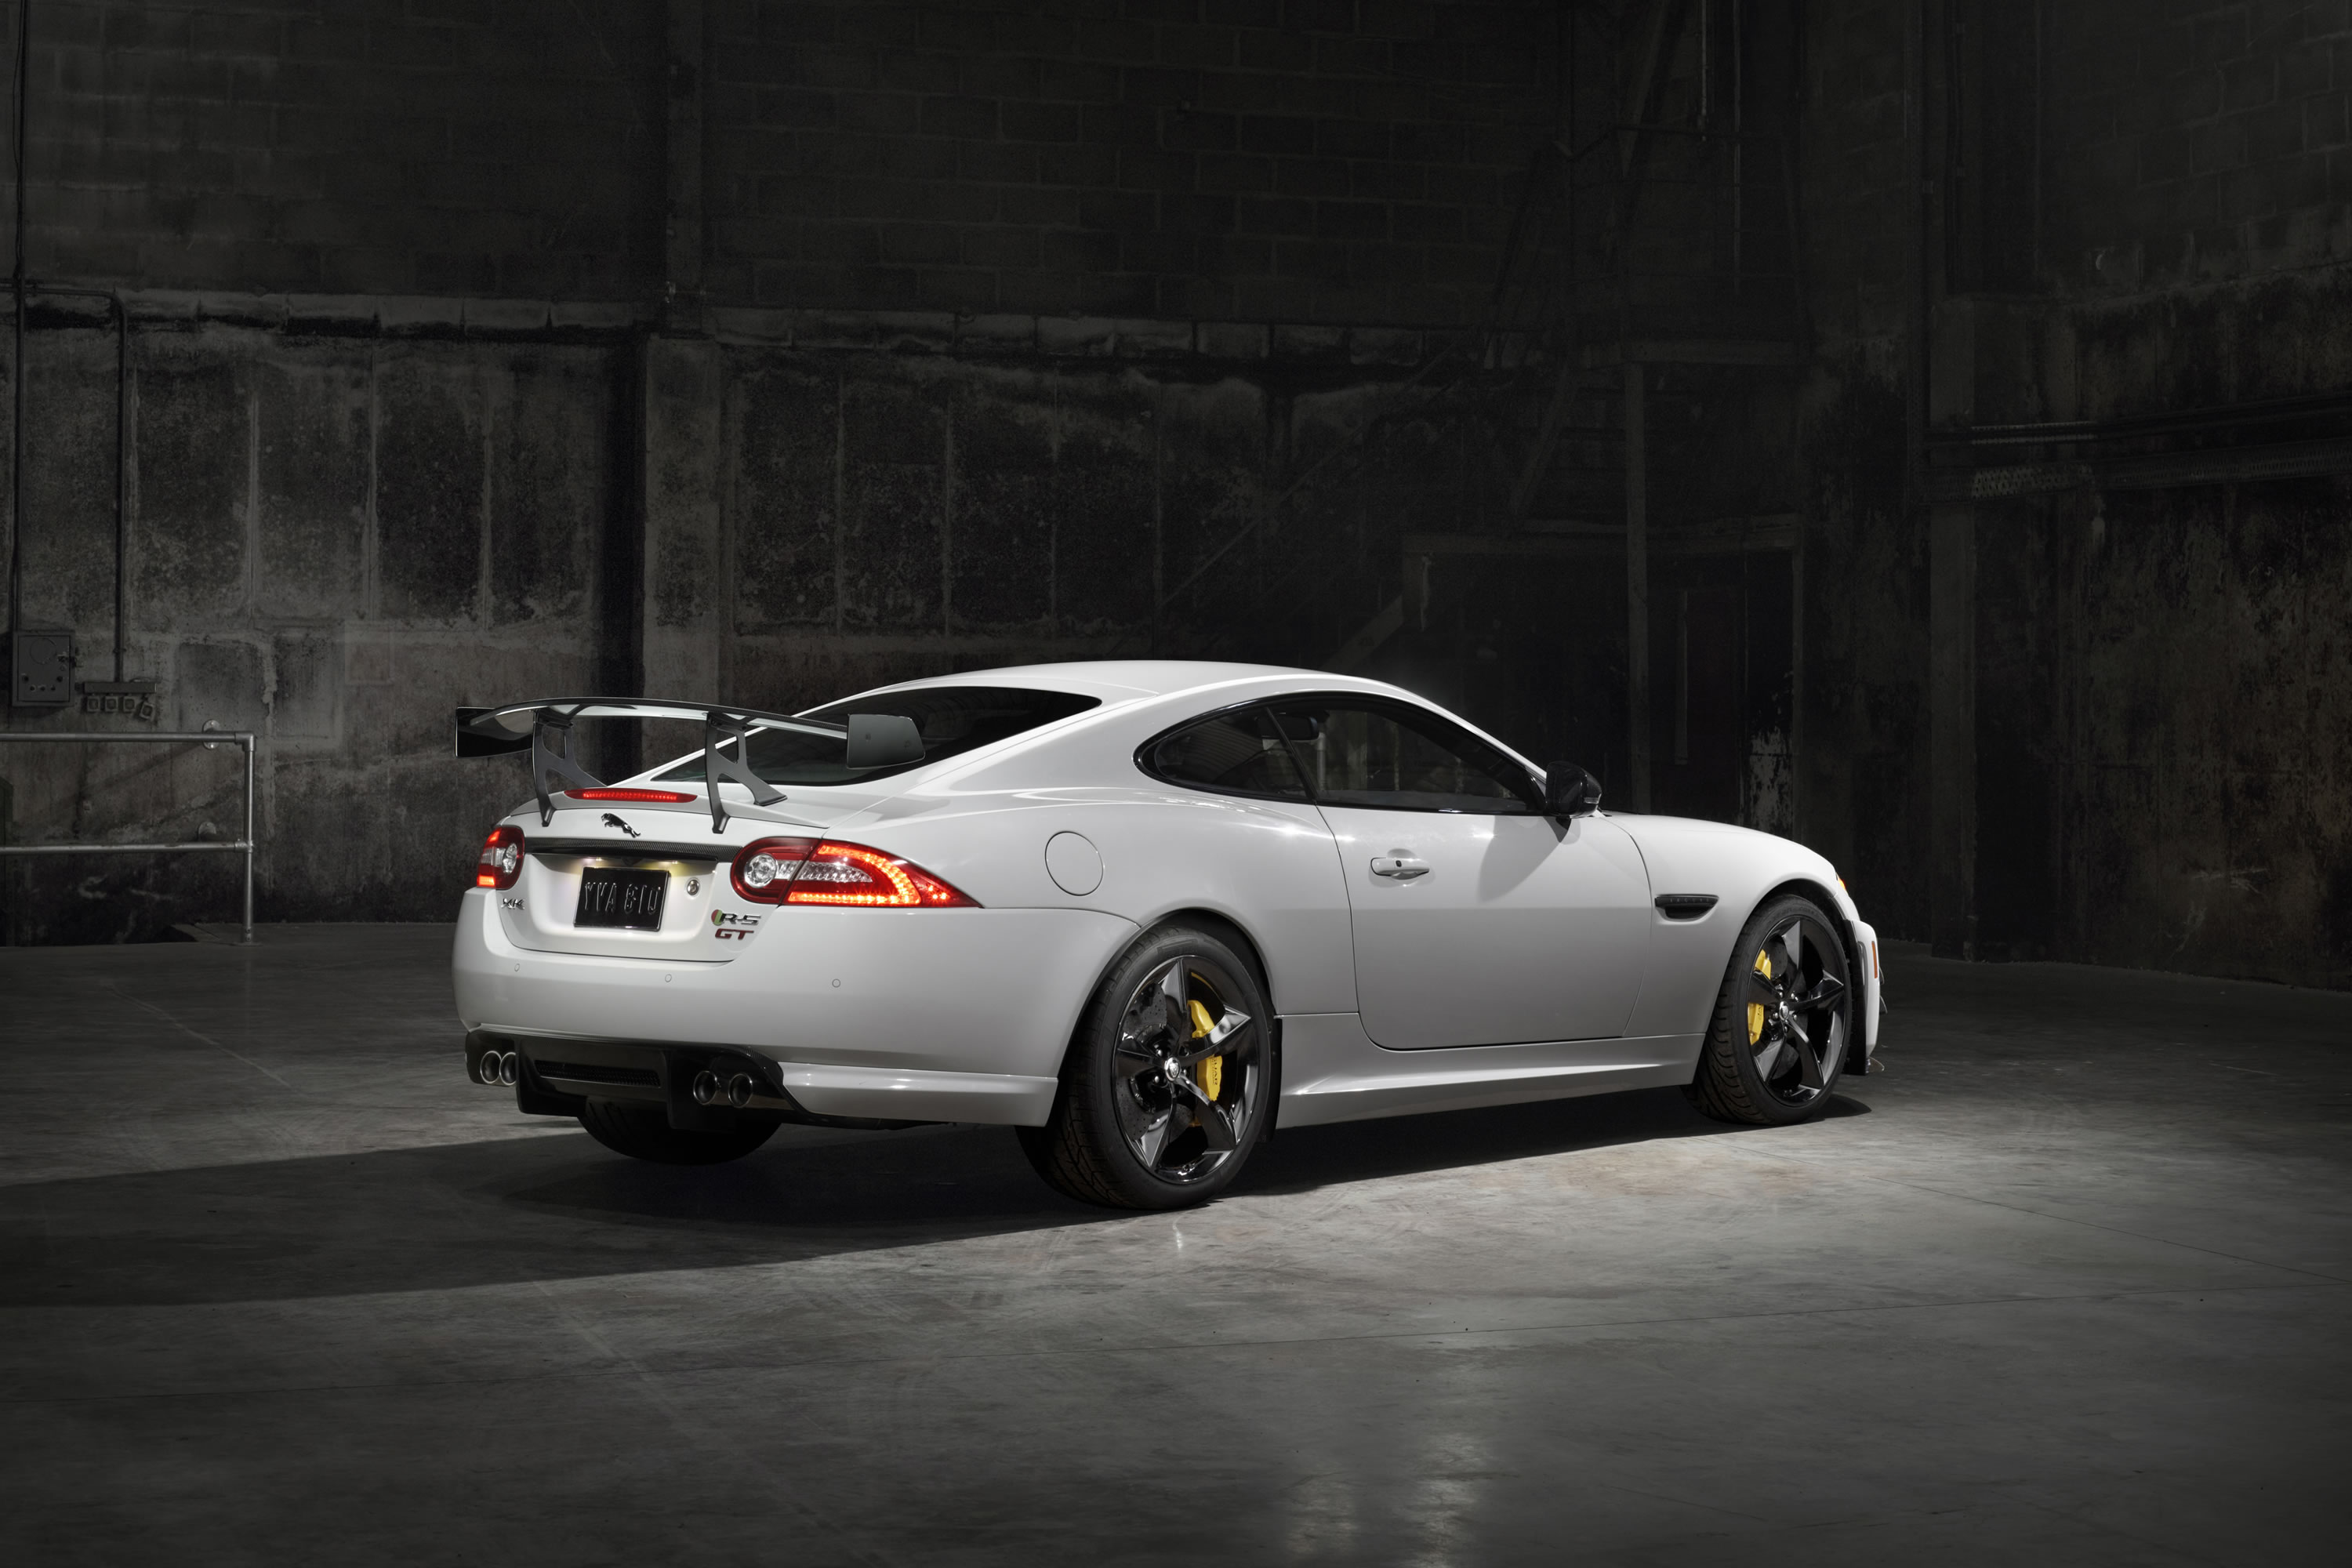 Initial Production Will Be Limited To Just 30 Cars, Making The 2014 XKR S